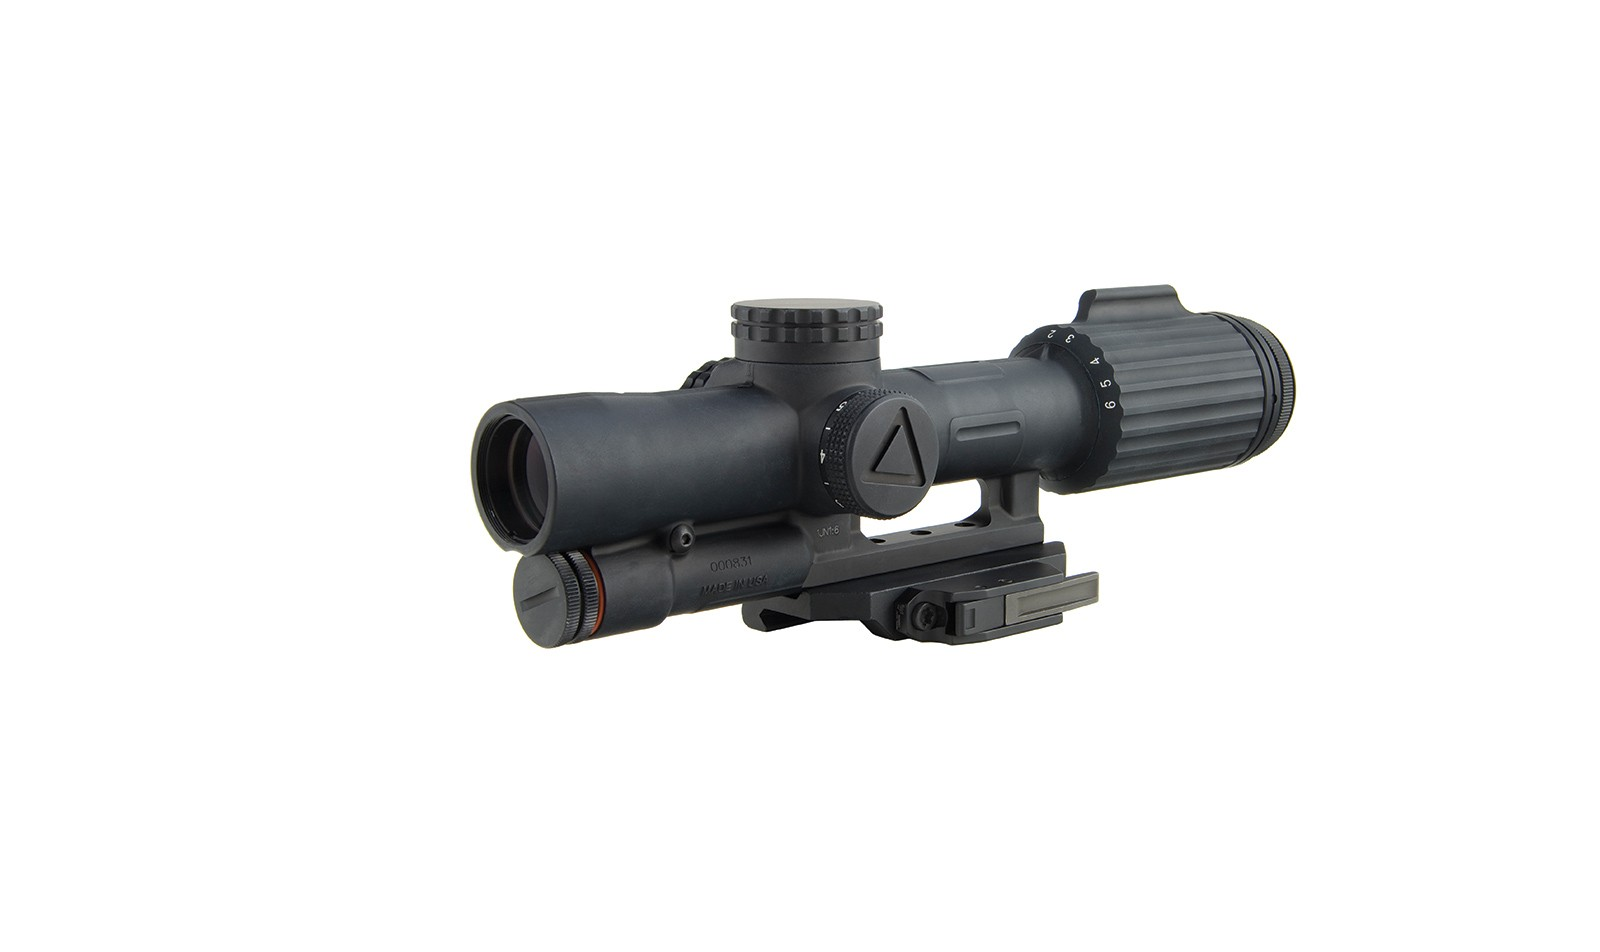 Trijicon VCOG® 1-6x24 LED Riflescope - 300 BLK